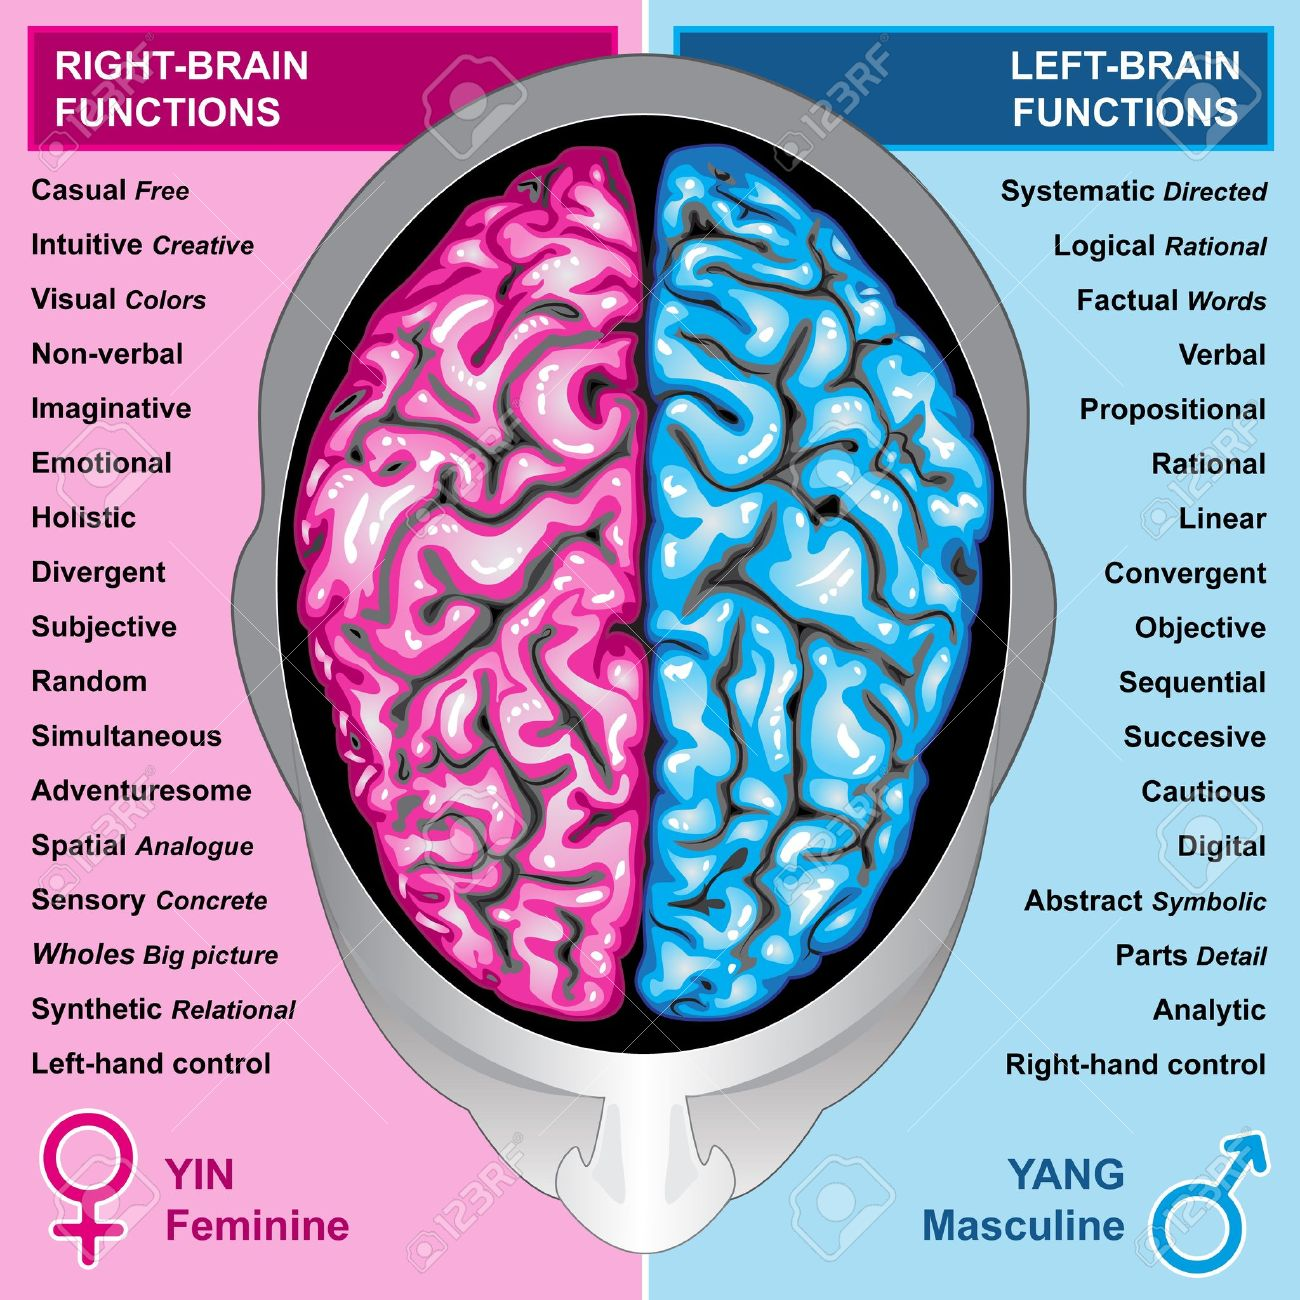 Human brain left and r...